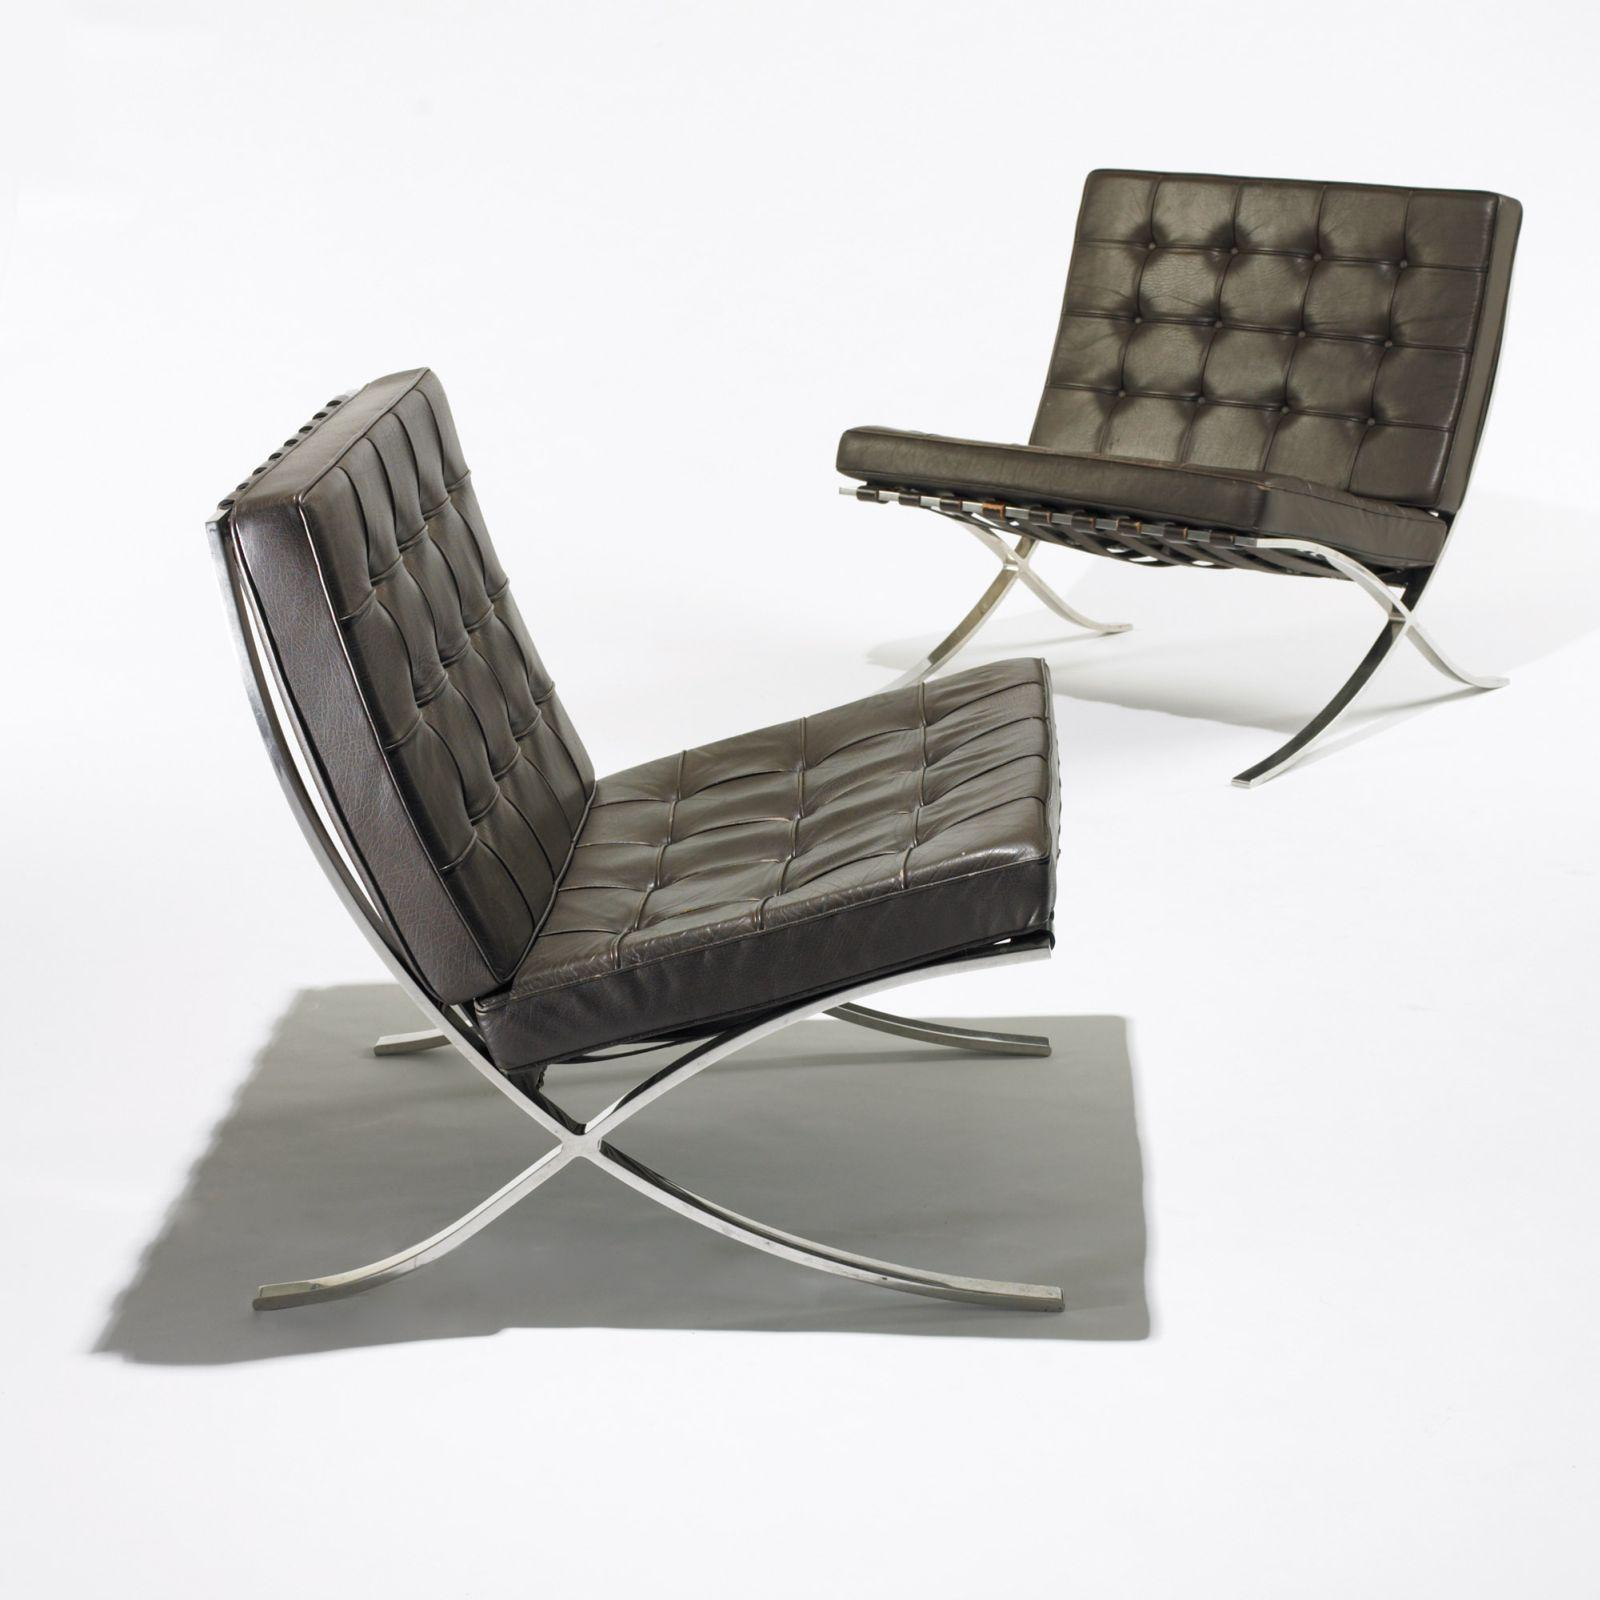 barcelona chairs for sale swing chair bangkok ludwig mies van der rohe pair